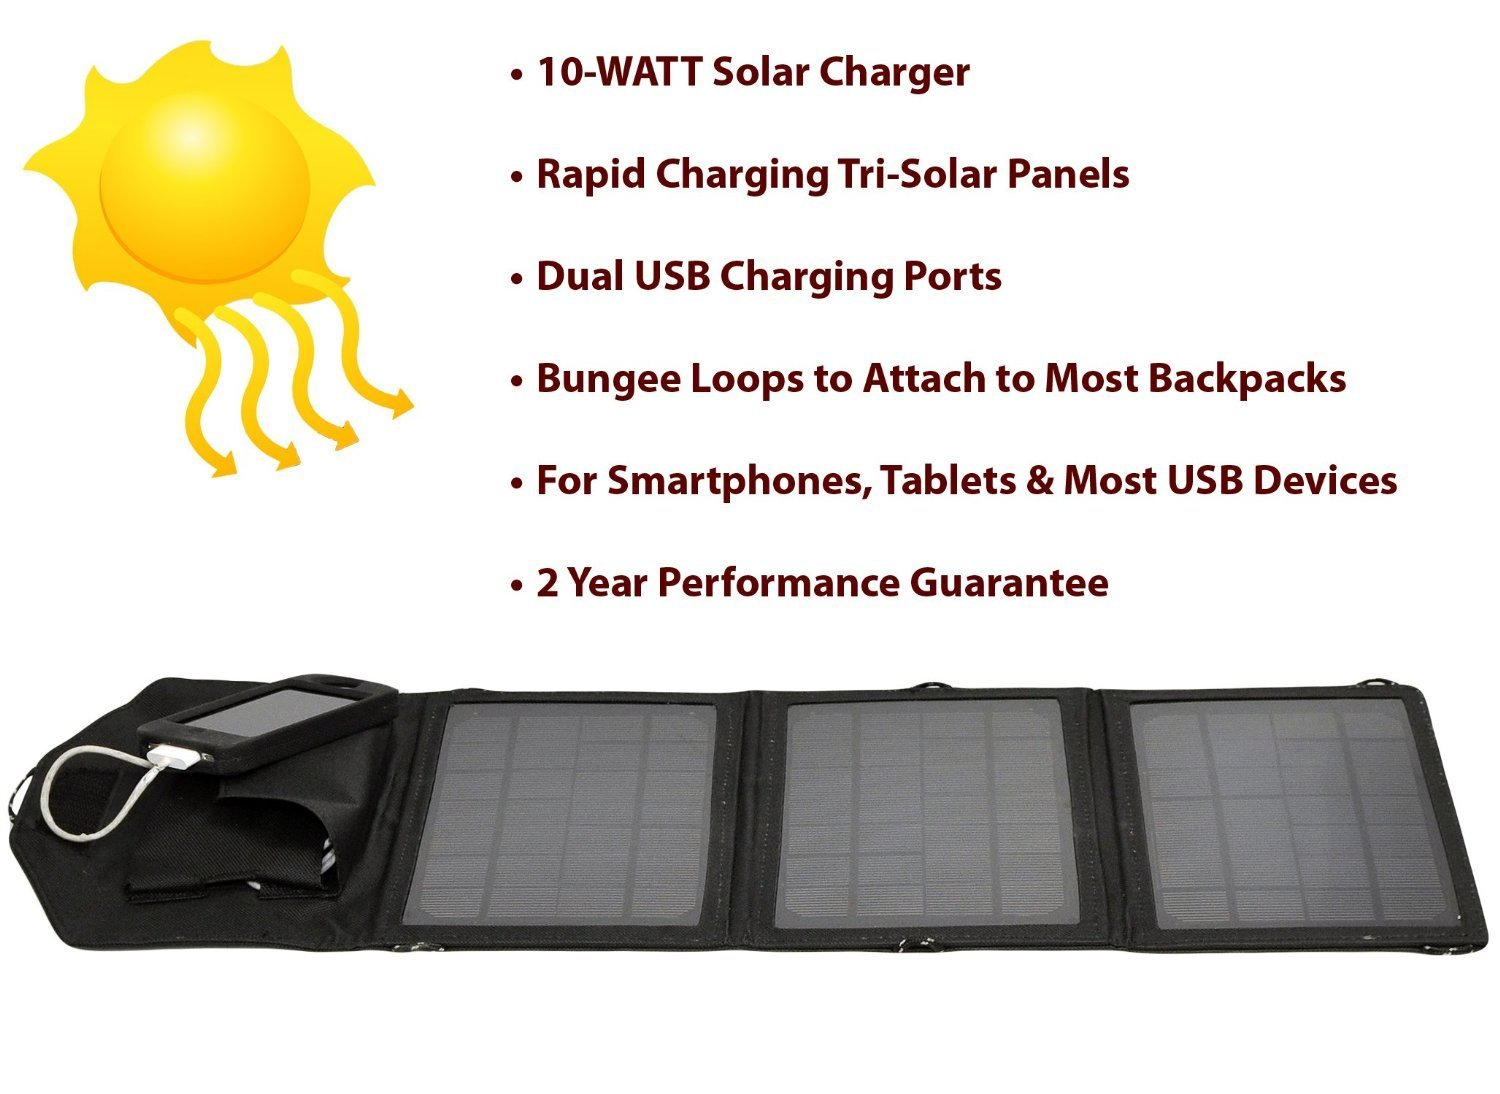 Opteka SP-10W Universal 10-WATT Triple-Panel Rapid Solar Charger with 2 USB Ports for Smartphones, Tablets & Other USB Powered D at Sears.com